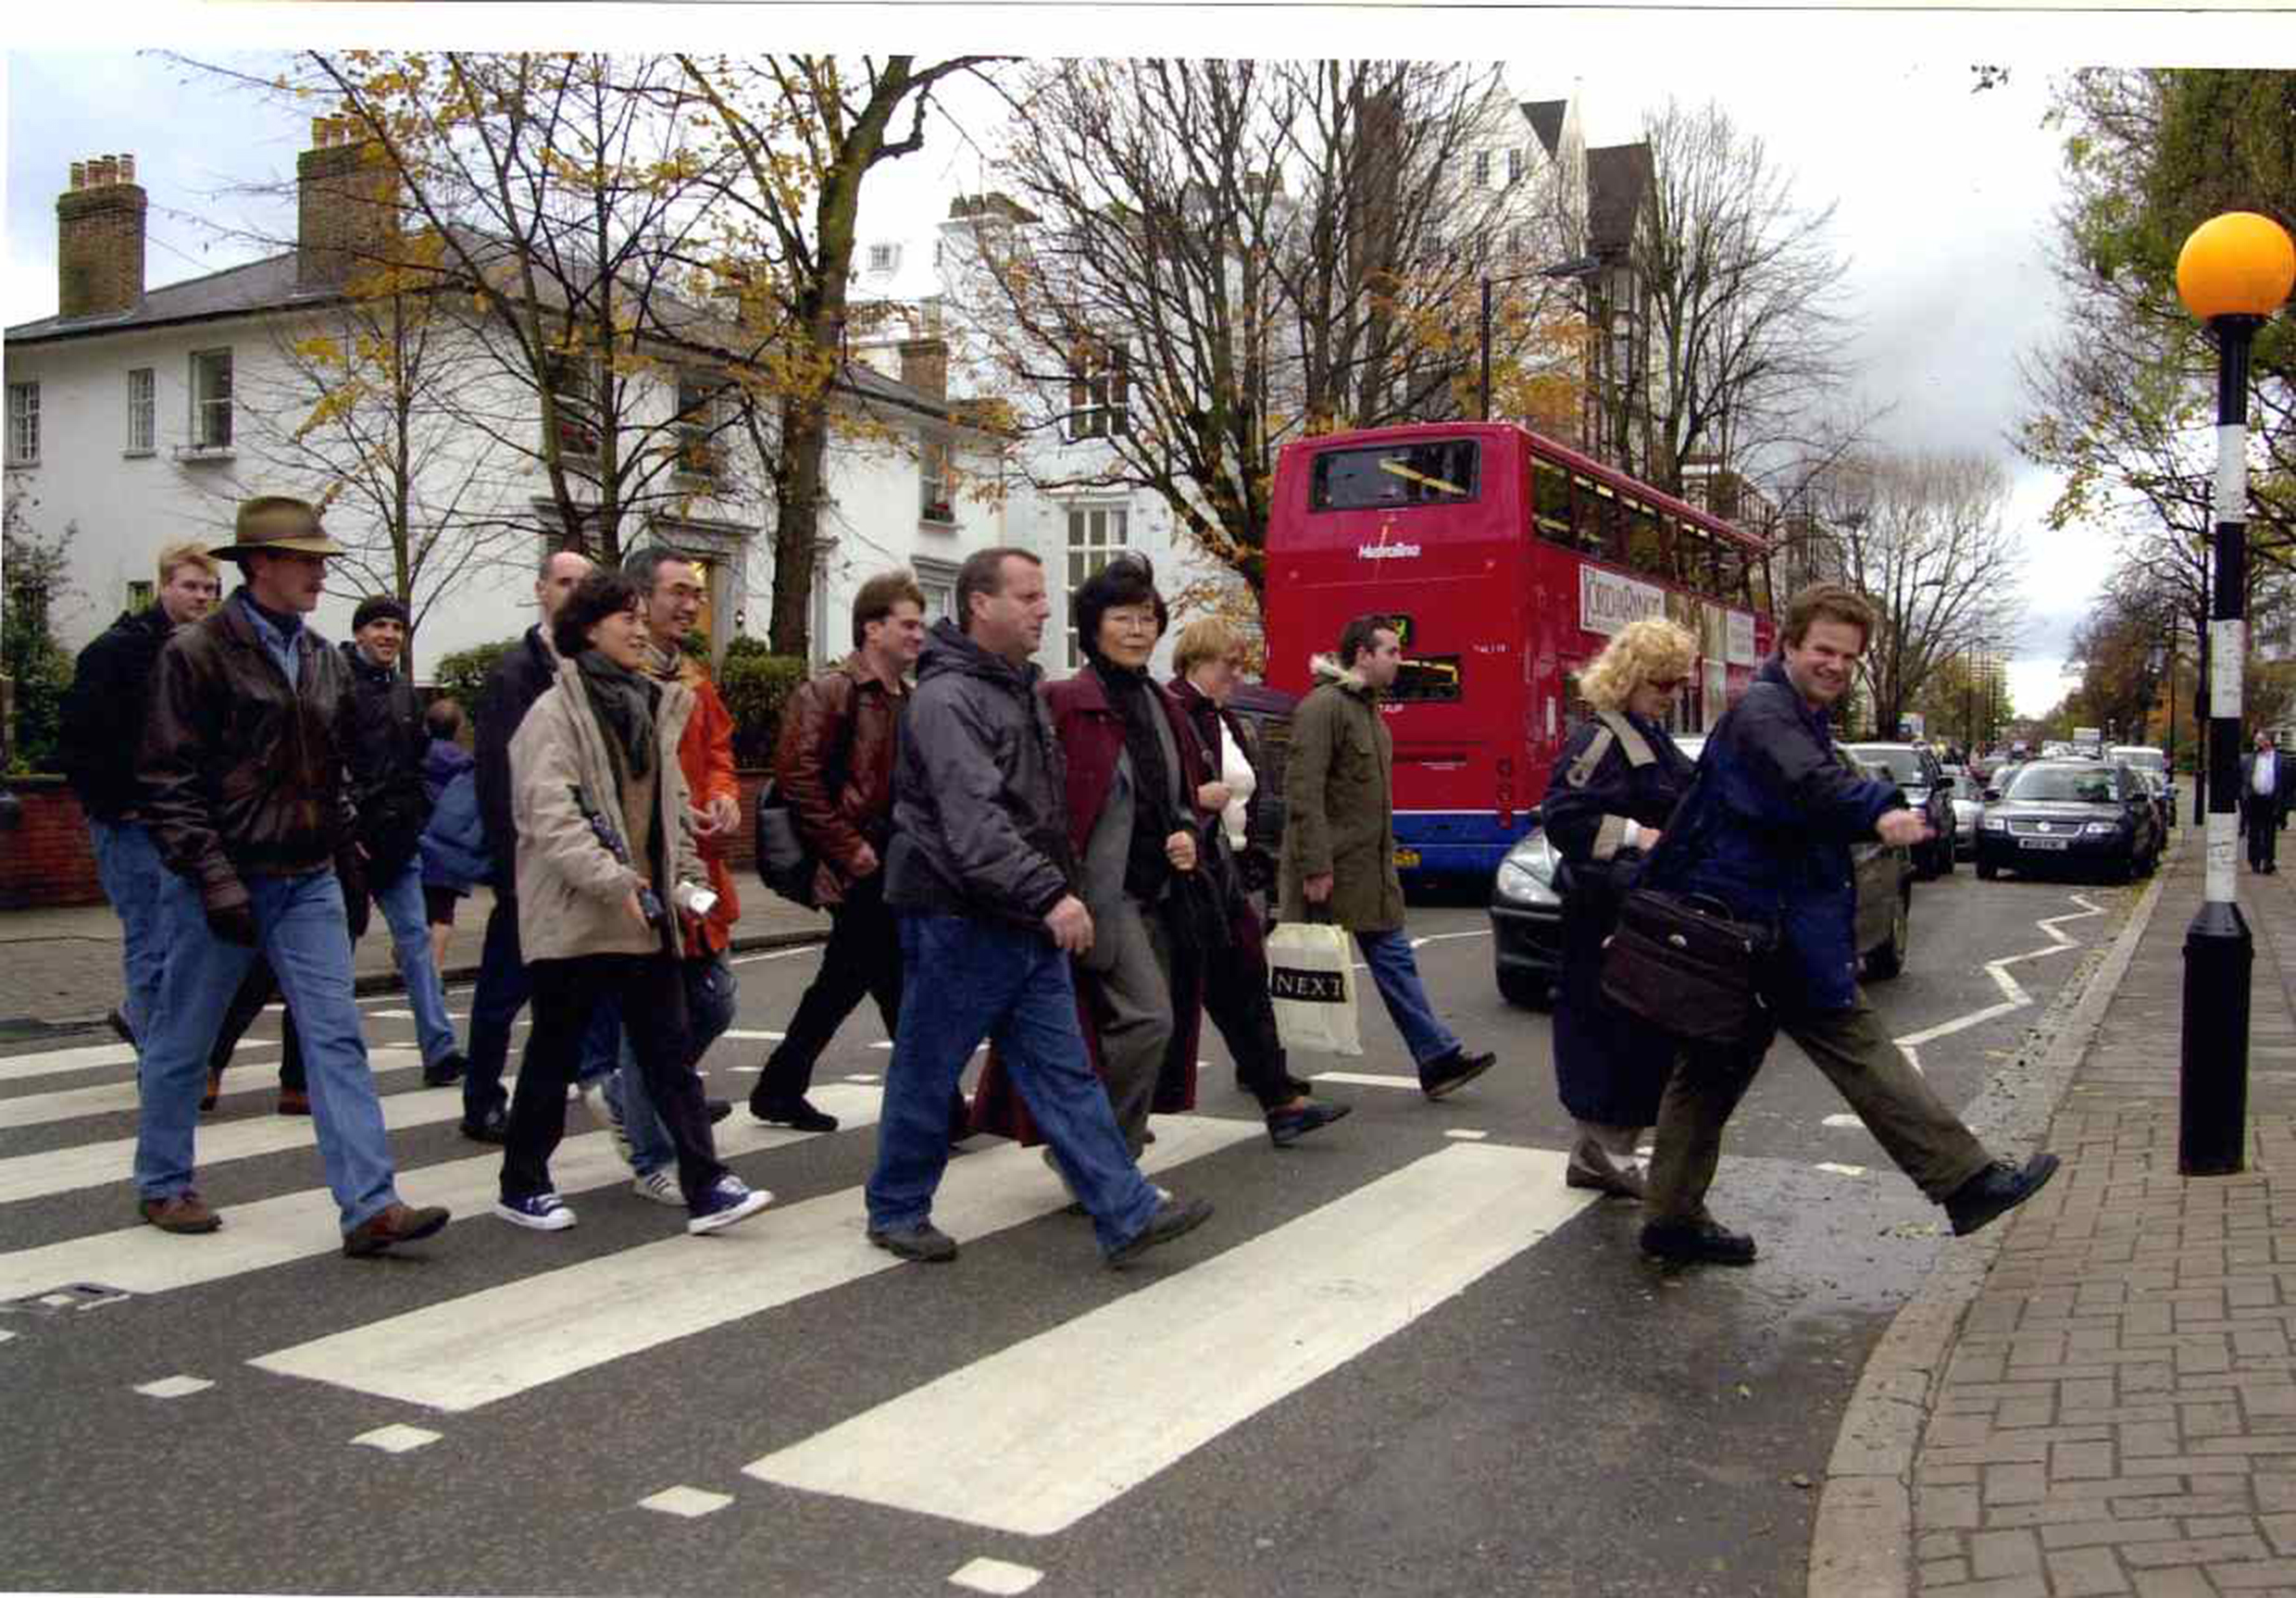 Beatles fans on Abbey Road